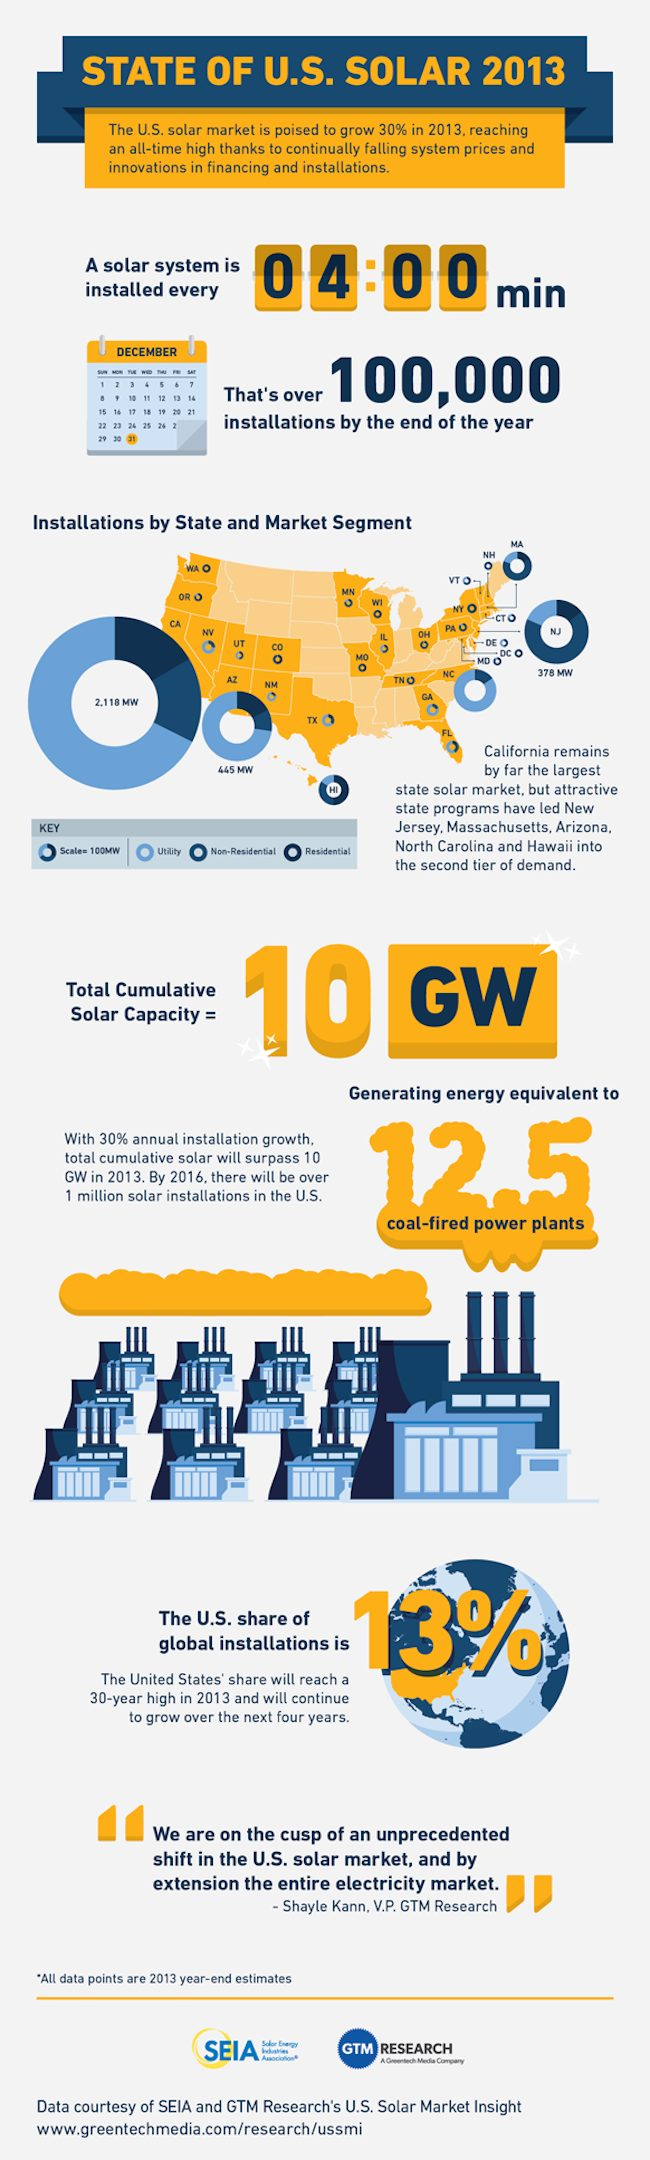 The state of solar power for the US in 2013